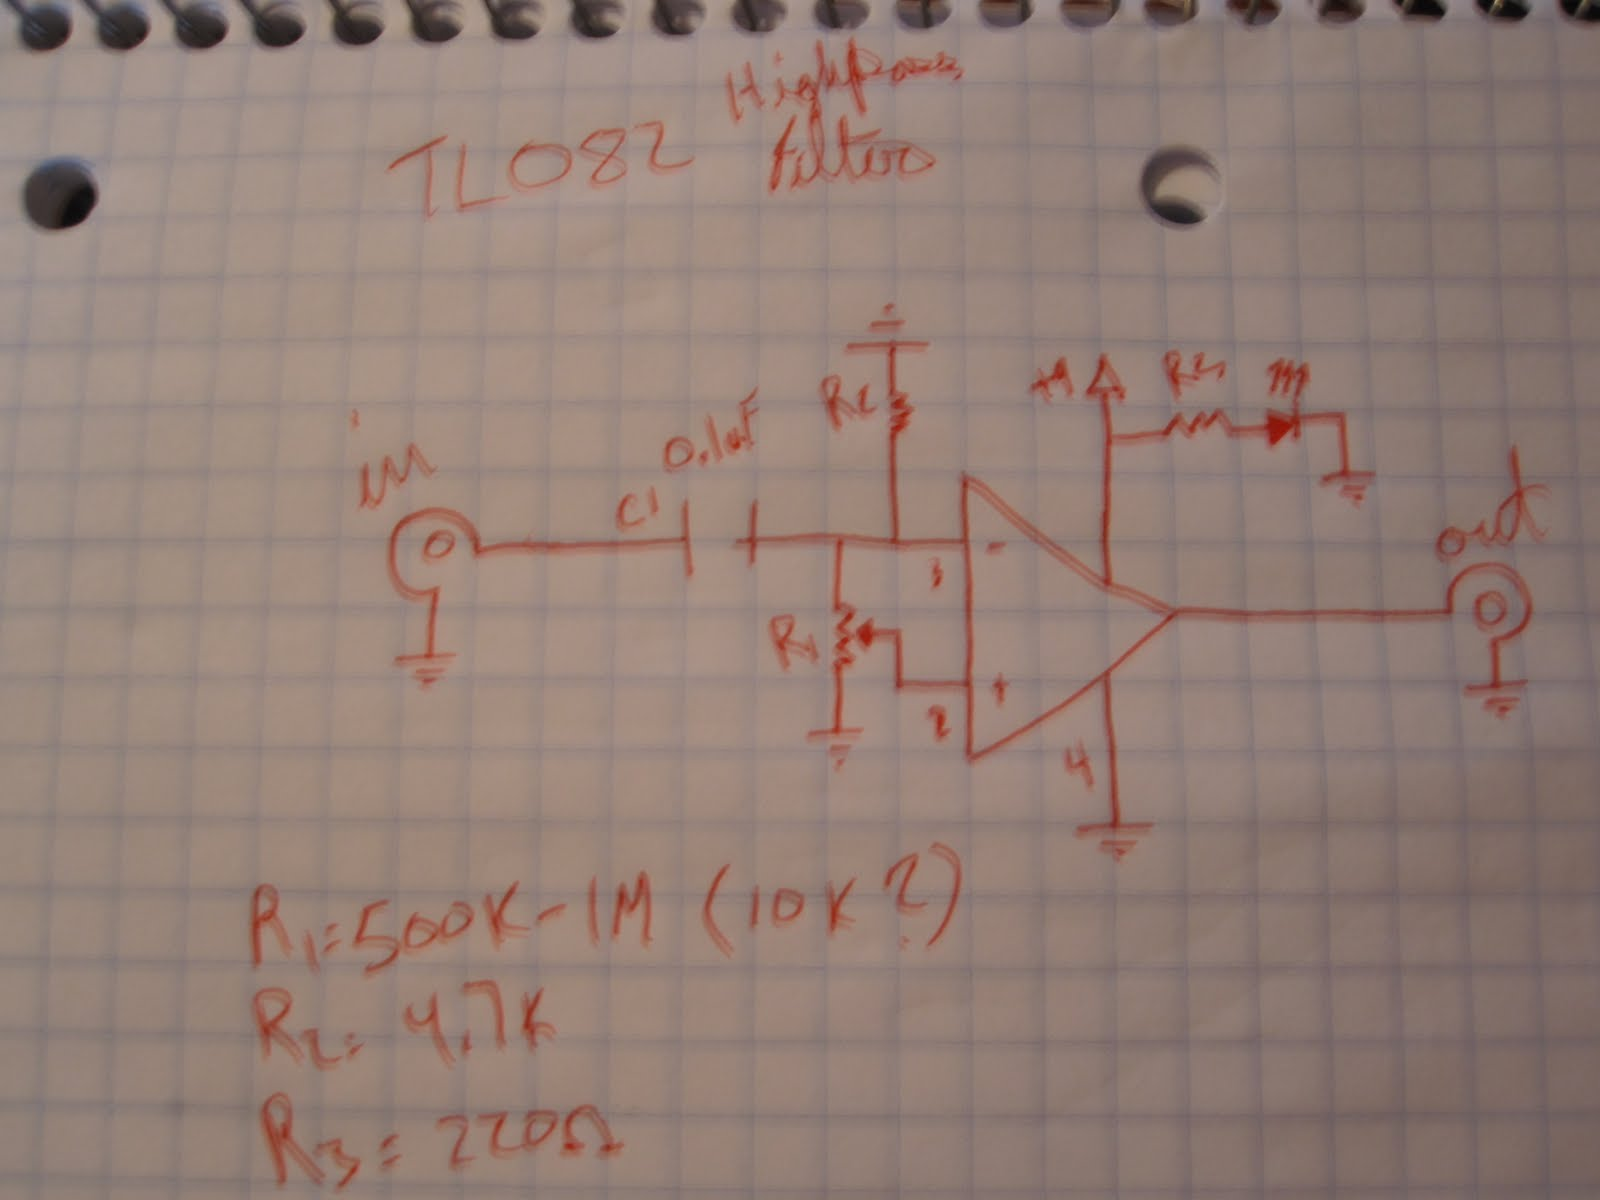 Dylan Palmes Diy Tl082 Filter Dual Operational Amplifier Schematic Heres The